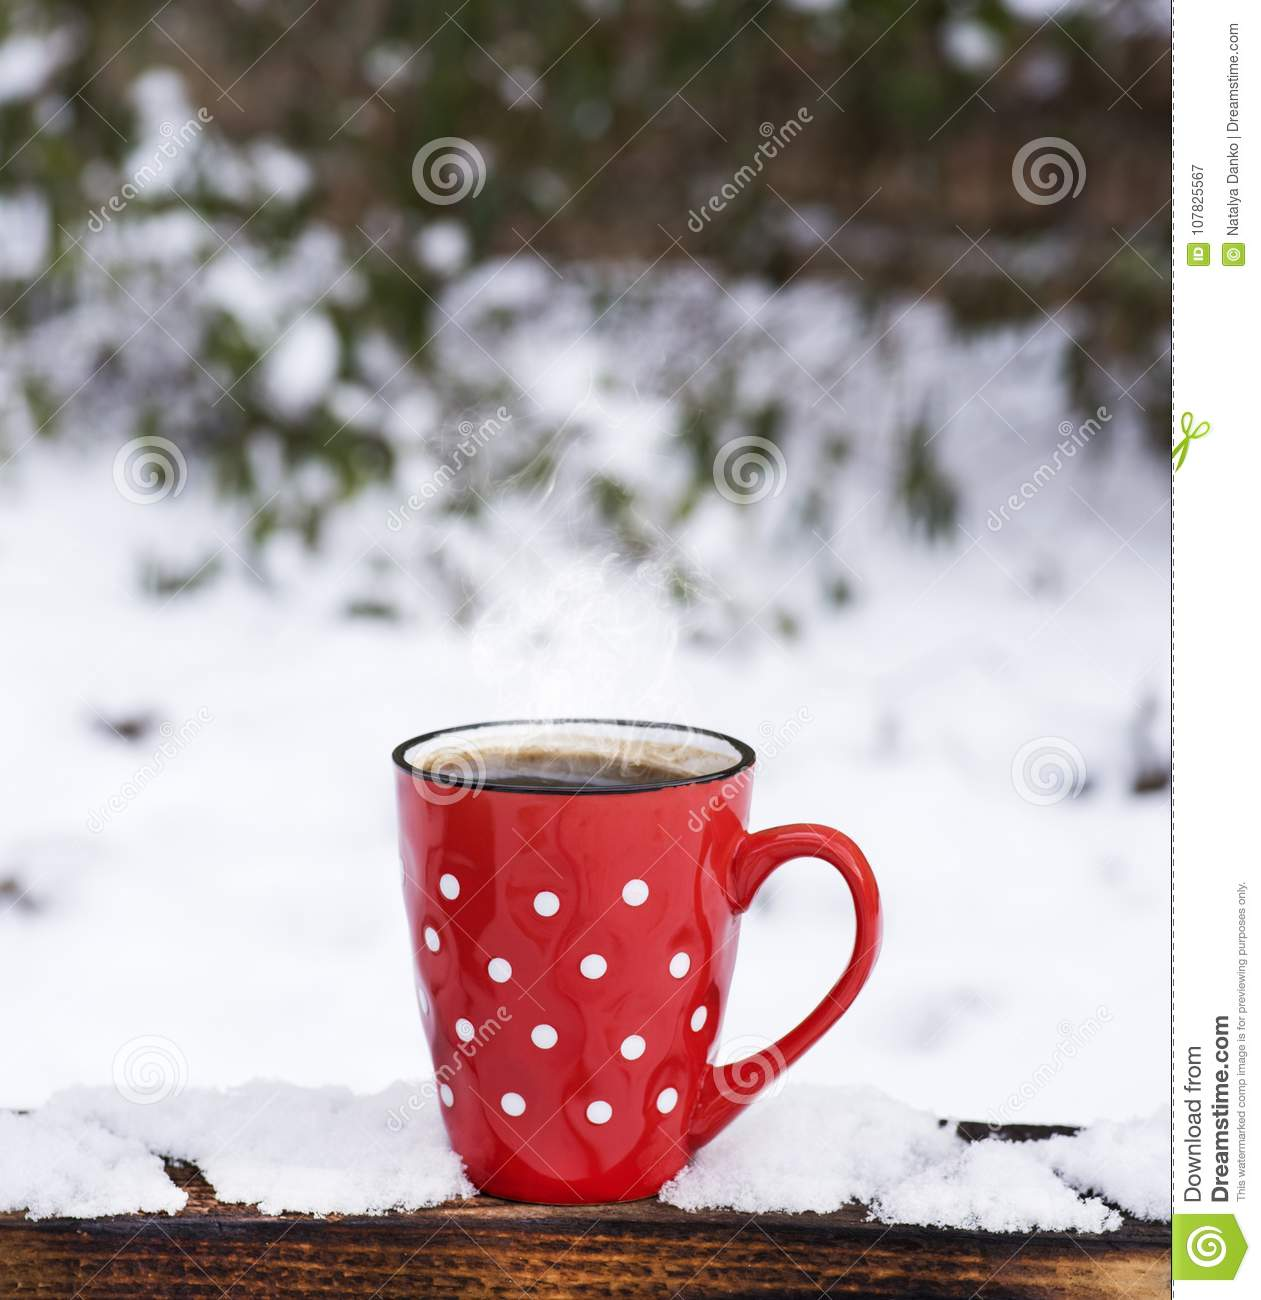 Red Ceramic Mug In A White Polka Dots With Coffee Stock Image ...